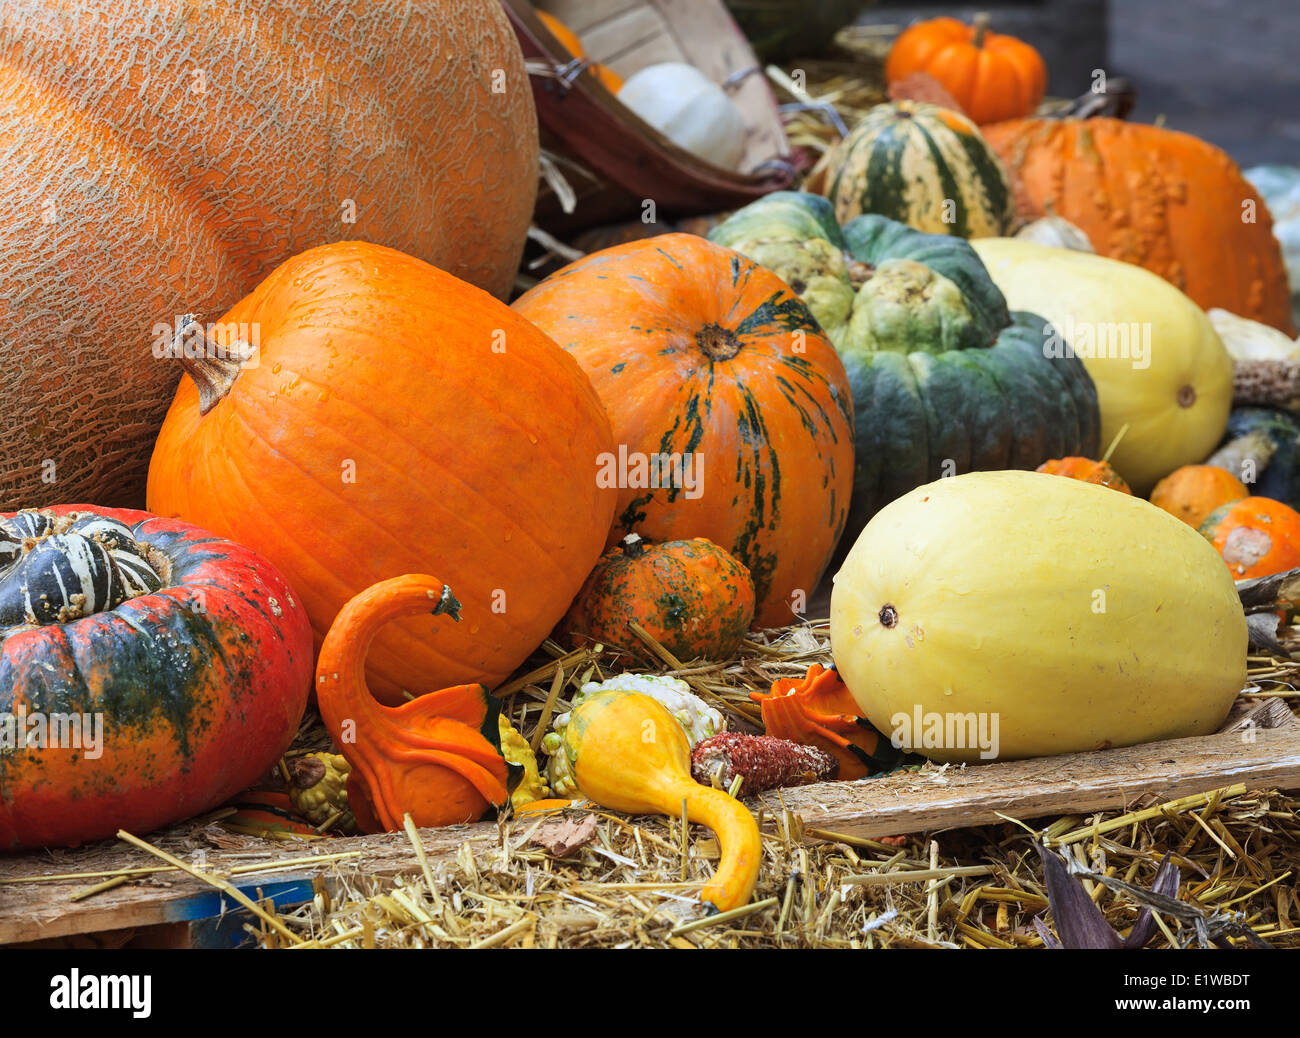 Thanksgiving display of fall harvest, pumpkins, squash and gourds, Mont Tremblant, Quebec, Canada - Stock Image